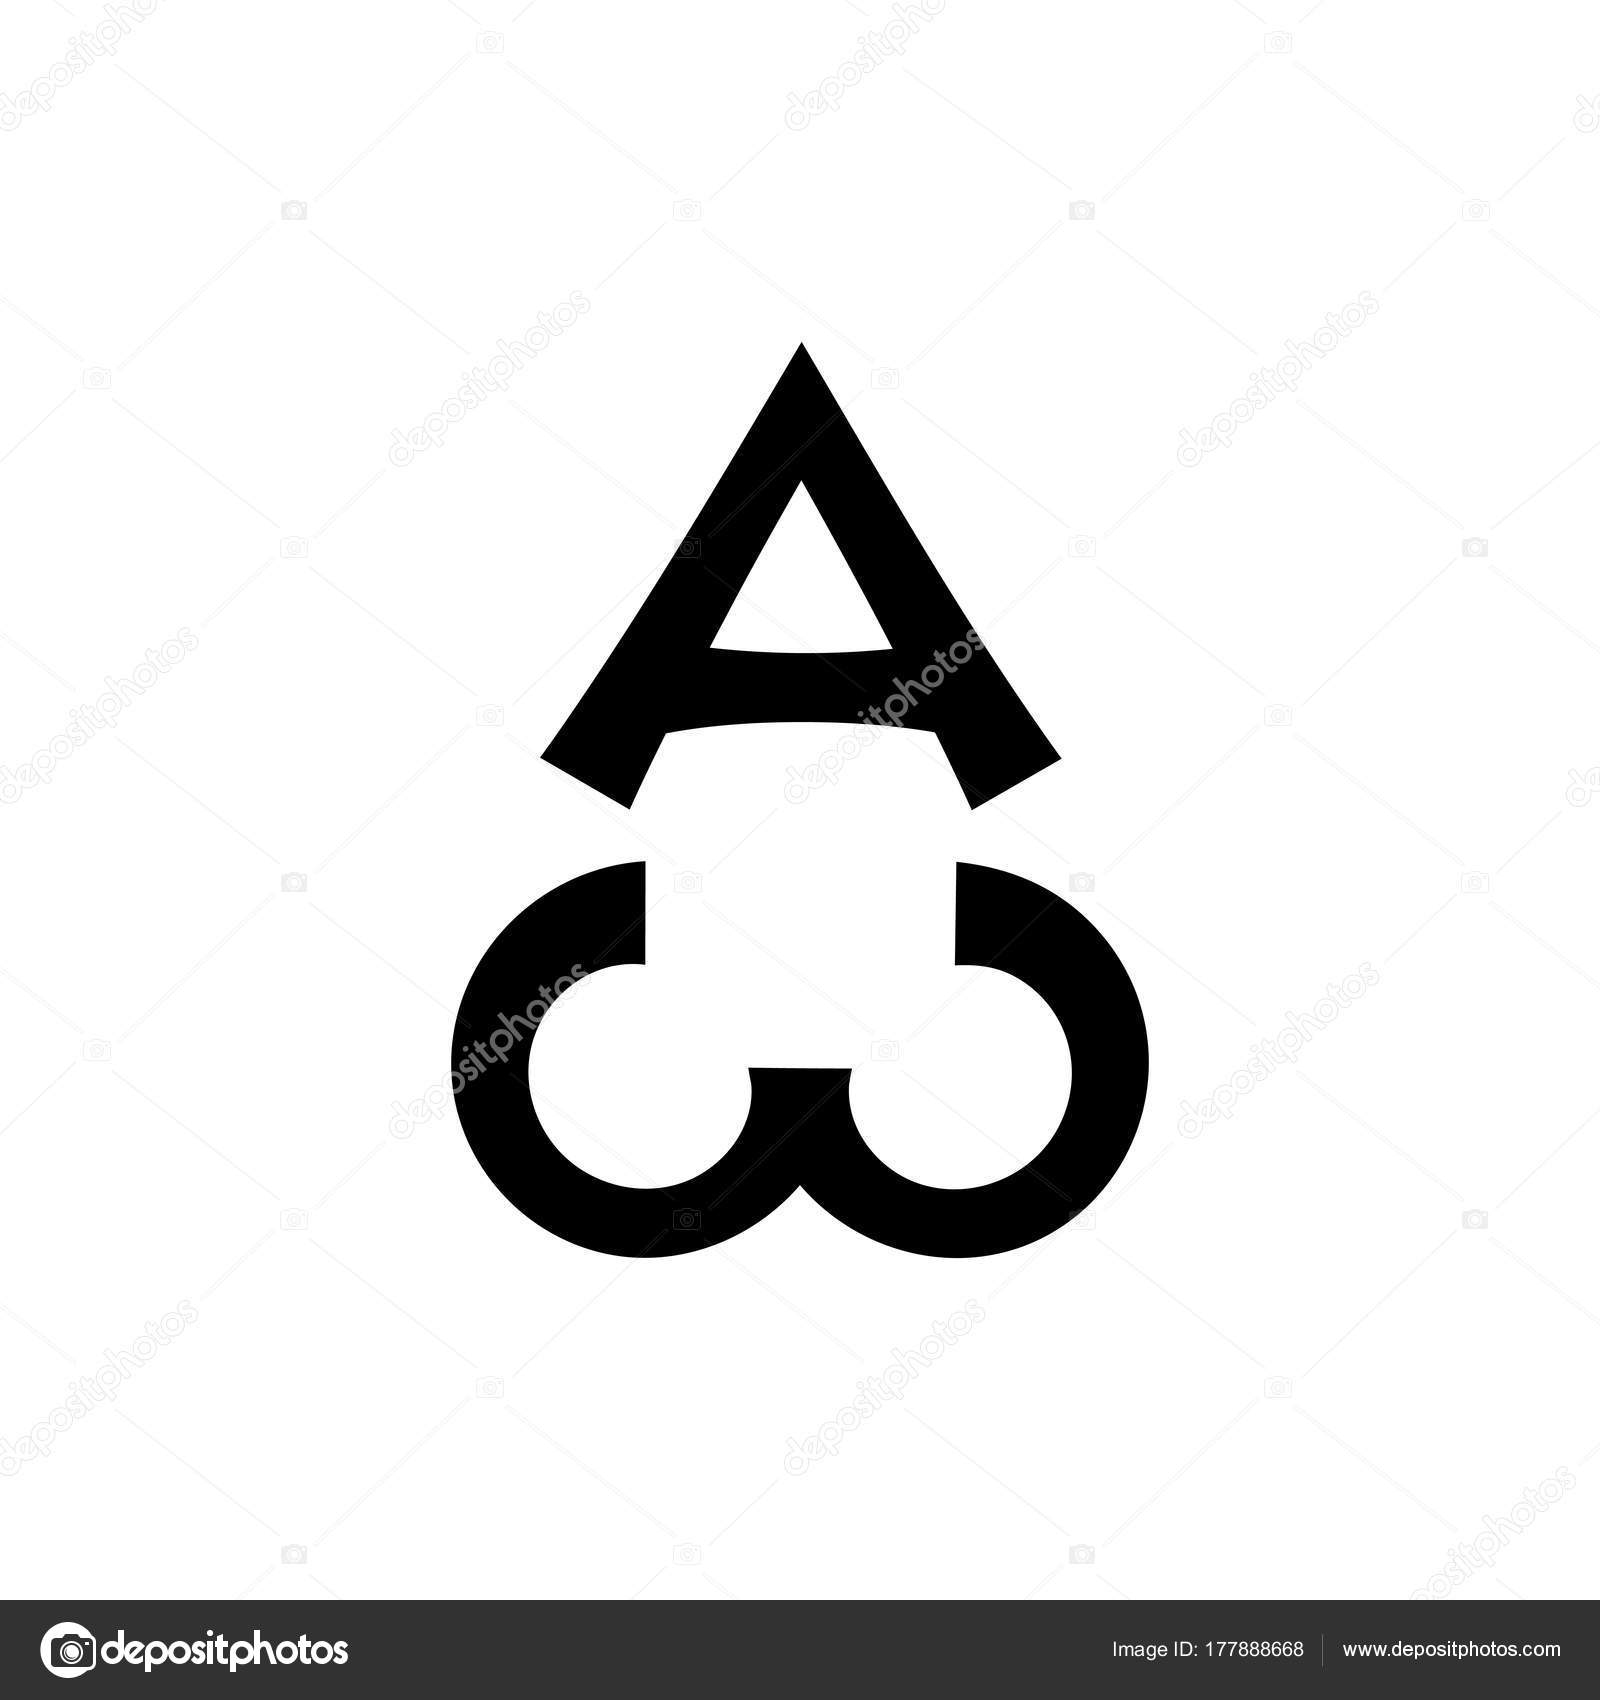 Monogram of the biblical phrase i am alpha and omega stock ancient christian sacral monogram of the biblical sentence i am alpha and omega the beginning and the end the first and the last buycottarizona